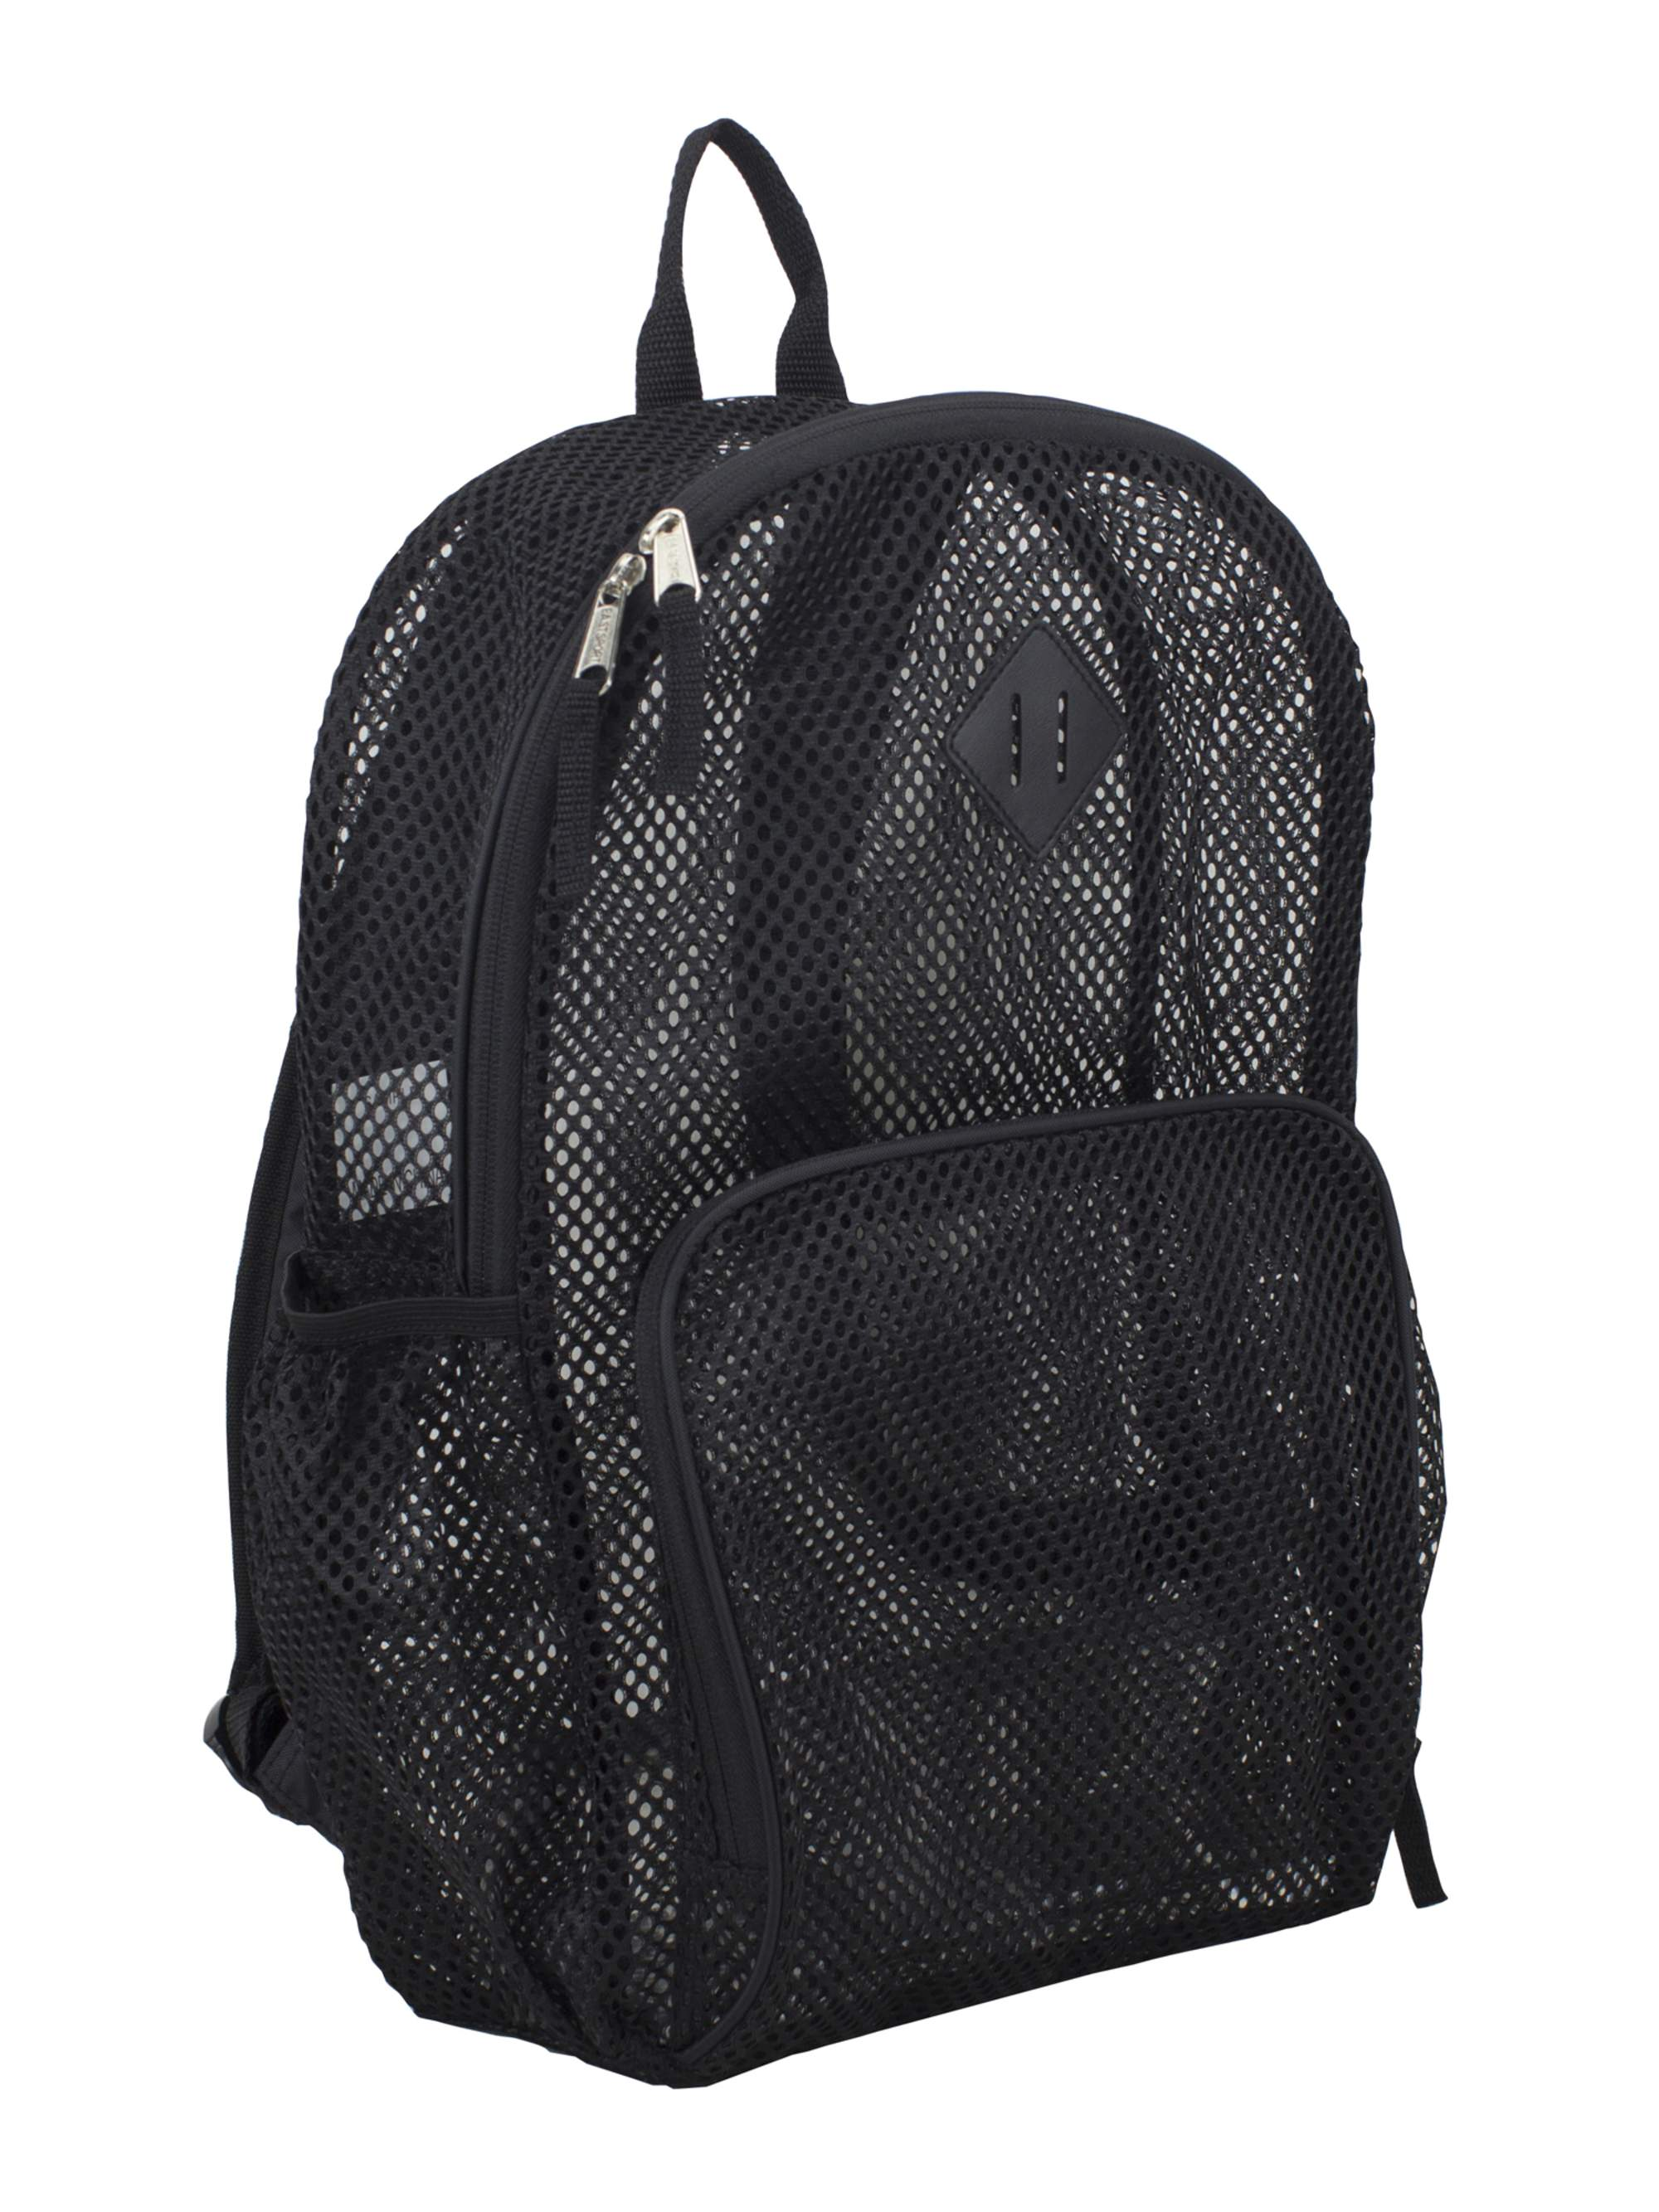 Multi-Purpose Mesh Backpack - FLJ CORPORATIONS